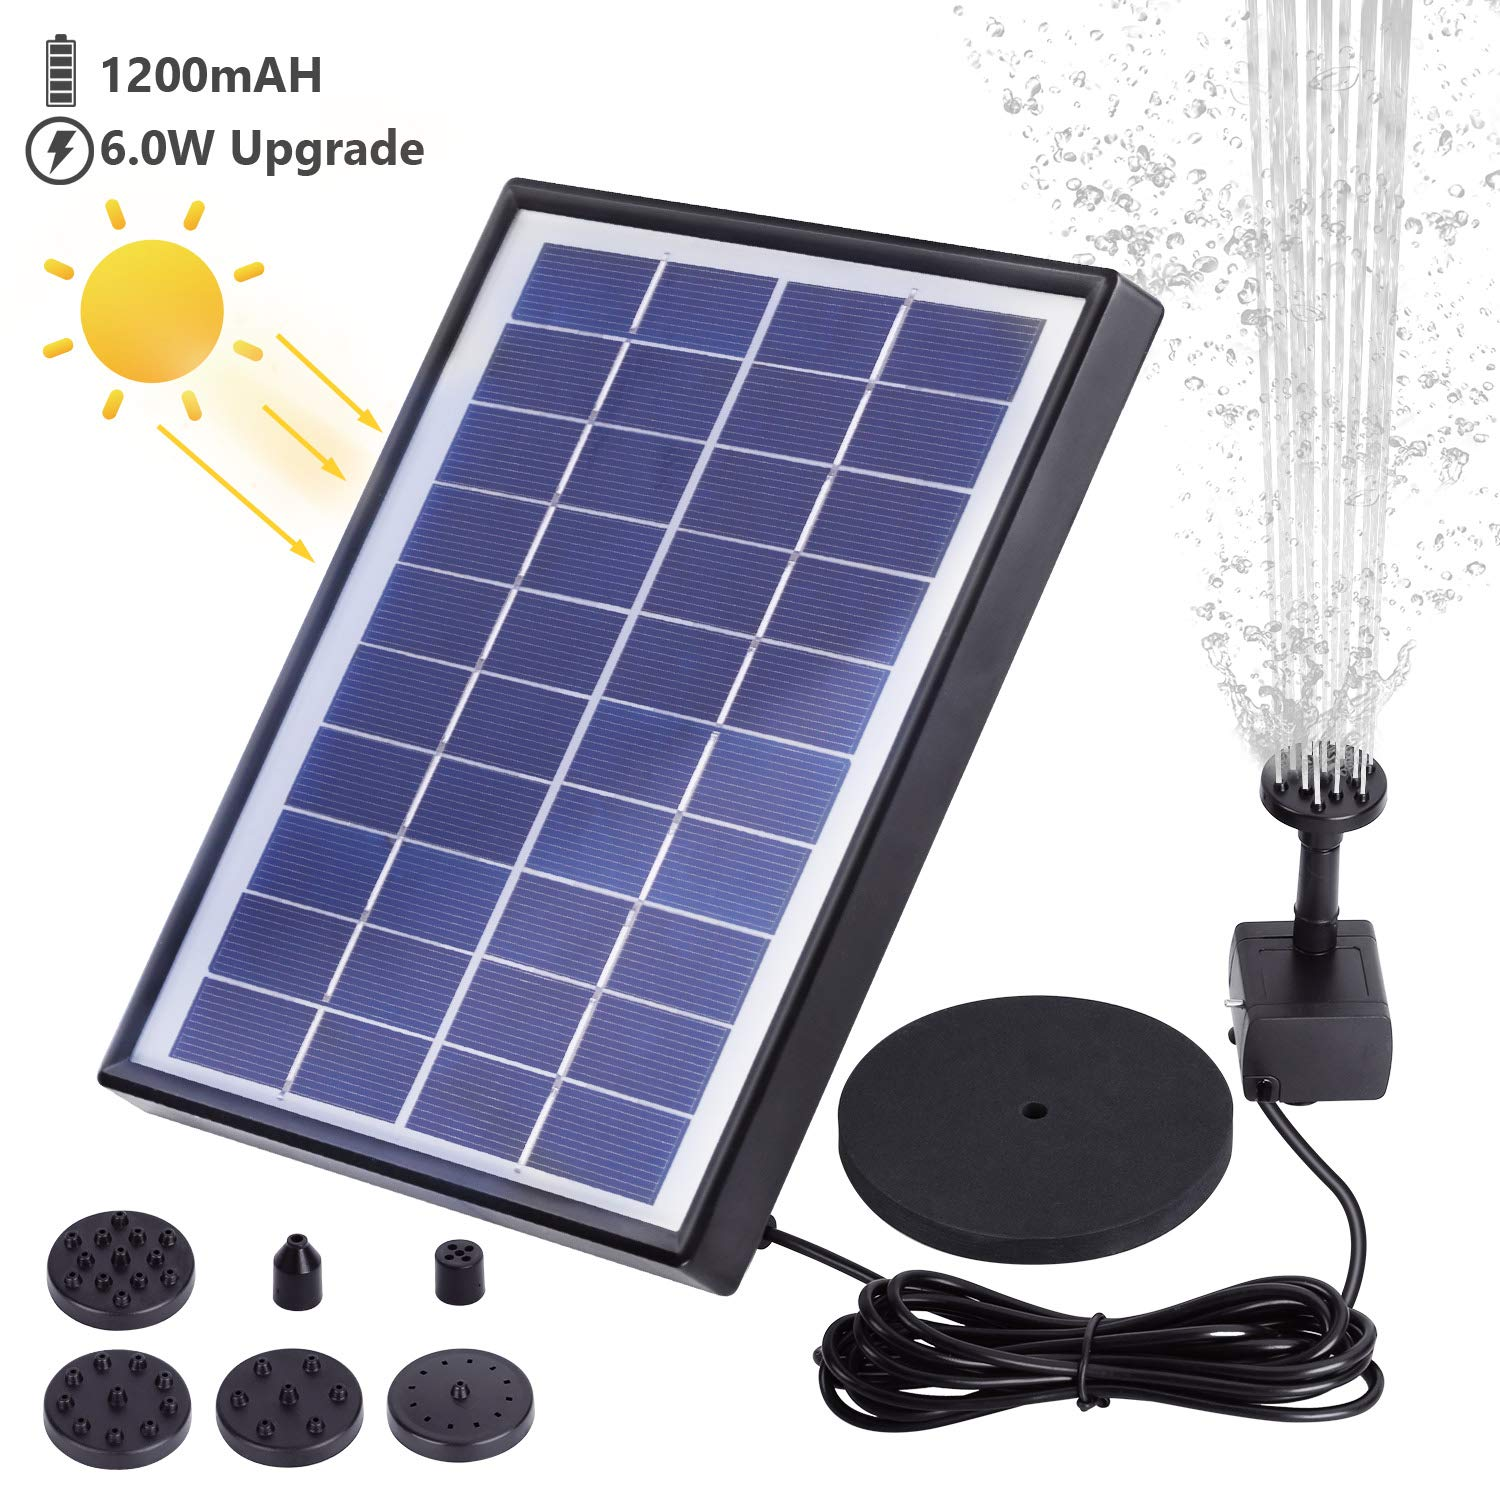 AISITIN 6.0W Solar Fountain Pump, Solar Water Pump Floating Fountain Built-in 1200mAh Battery, with 6 Nozzles, for Bird Bath, Fish Tank, Pond or Garden Decoration Solar Aerator Pump by AISITIN